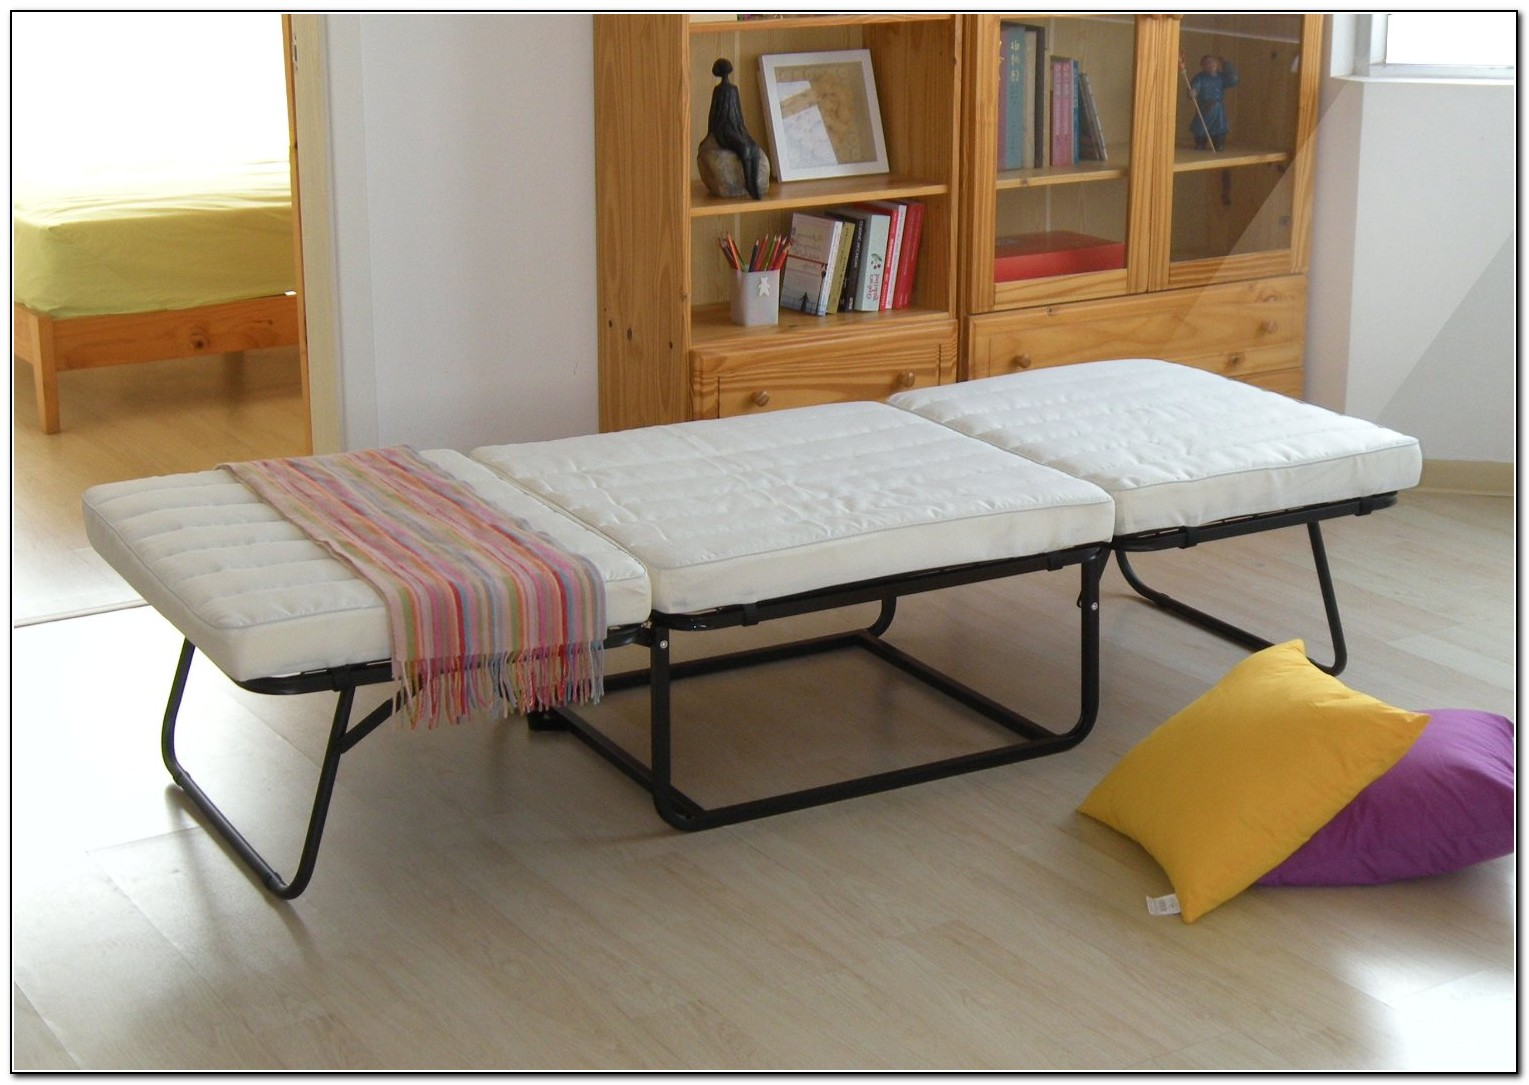 Fold Up Bed To Make Room